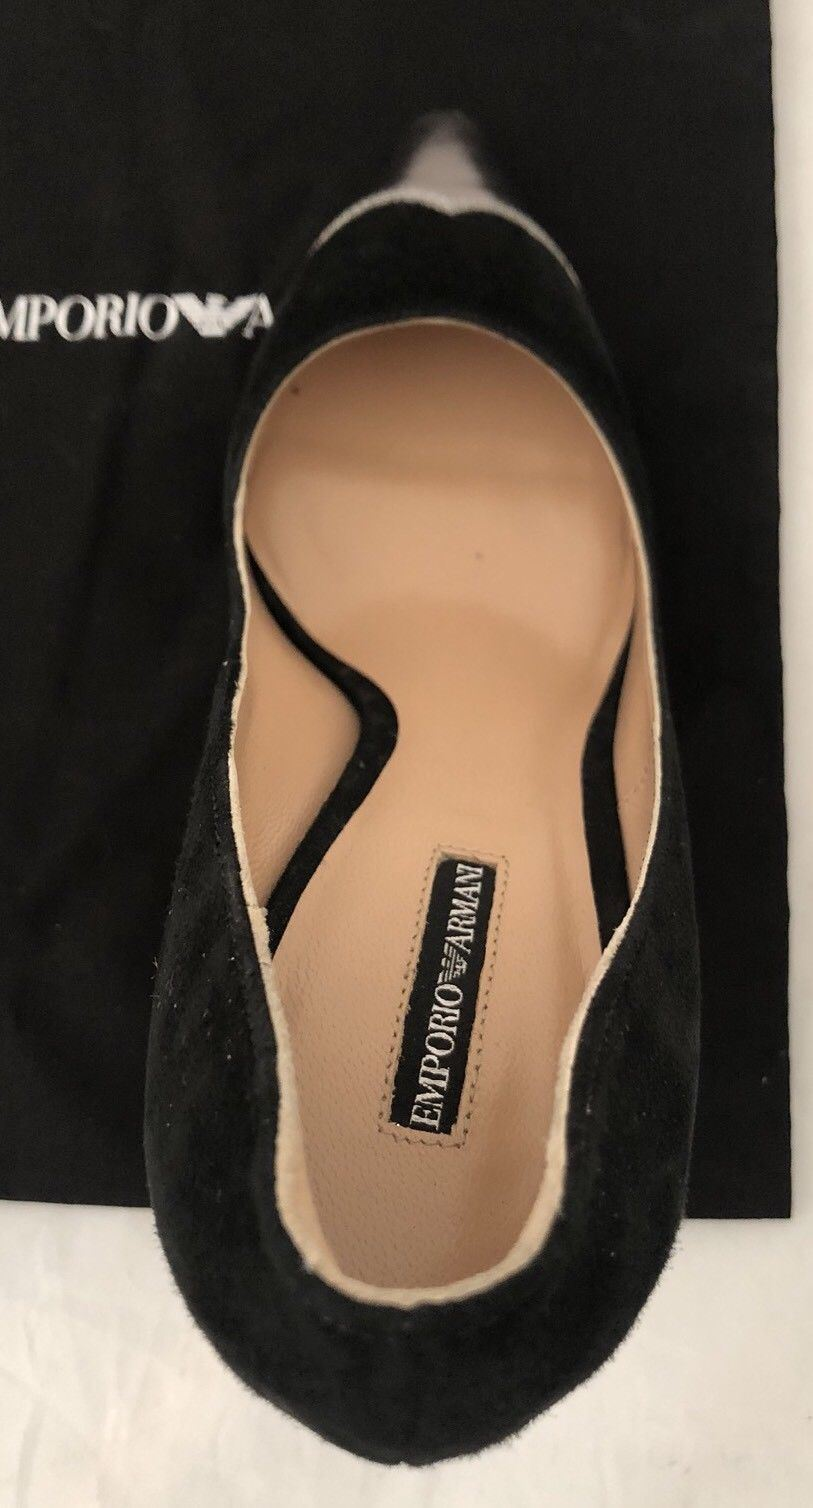 NIB $545 Emporio Armani Women's High Heel Suede Dress Shoes 7 US X3E271 Italy - BAYSUPERSTORE